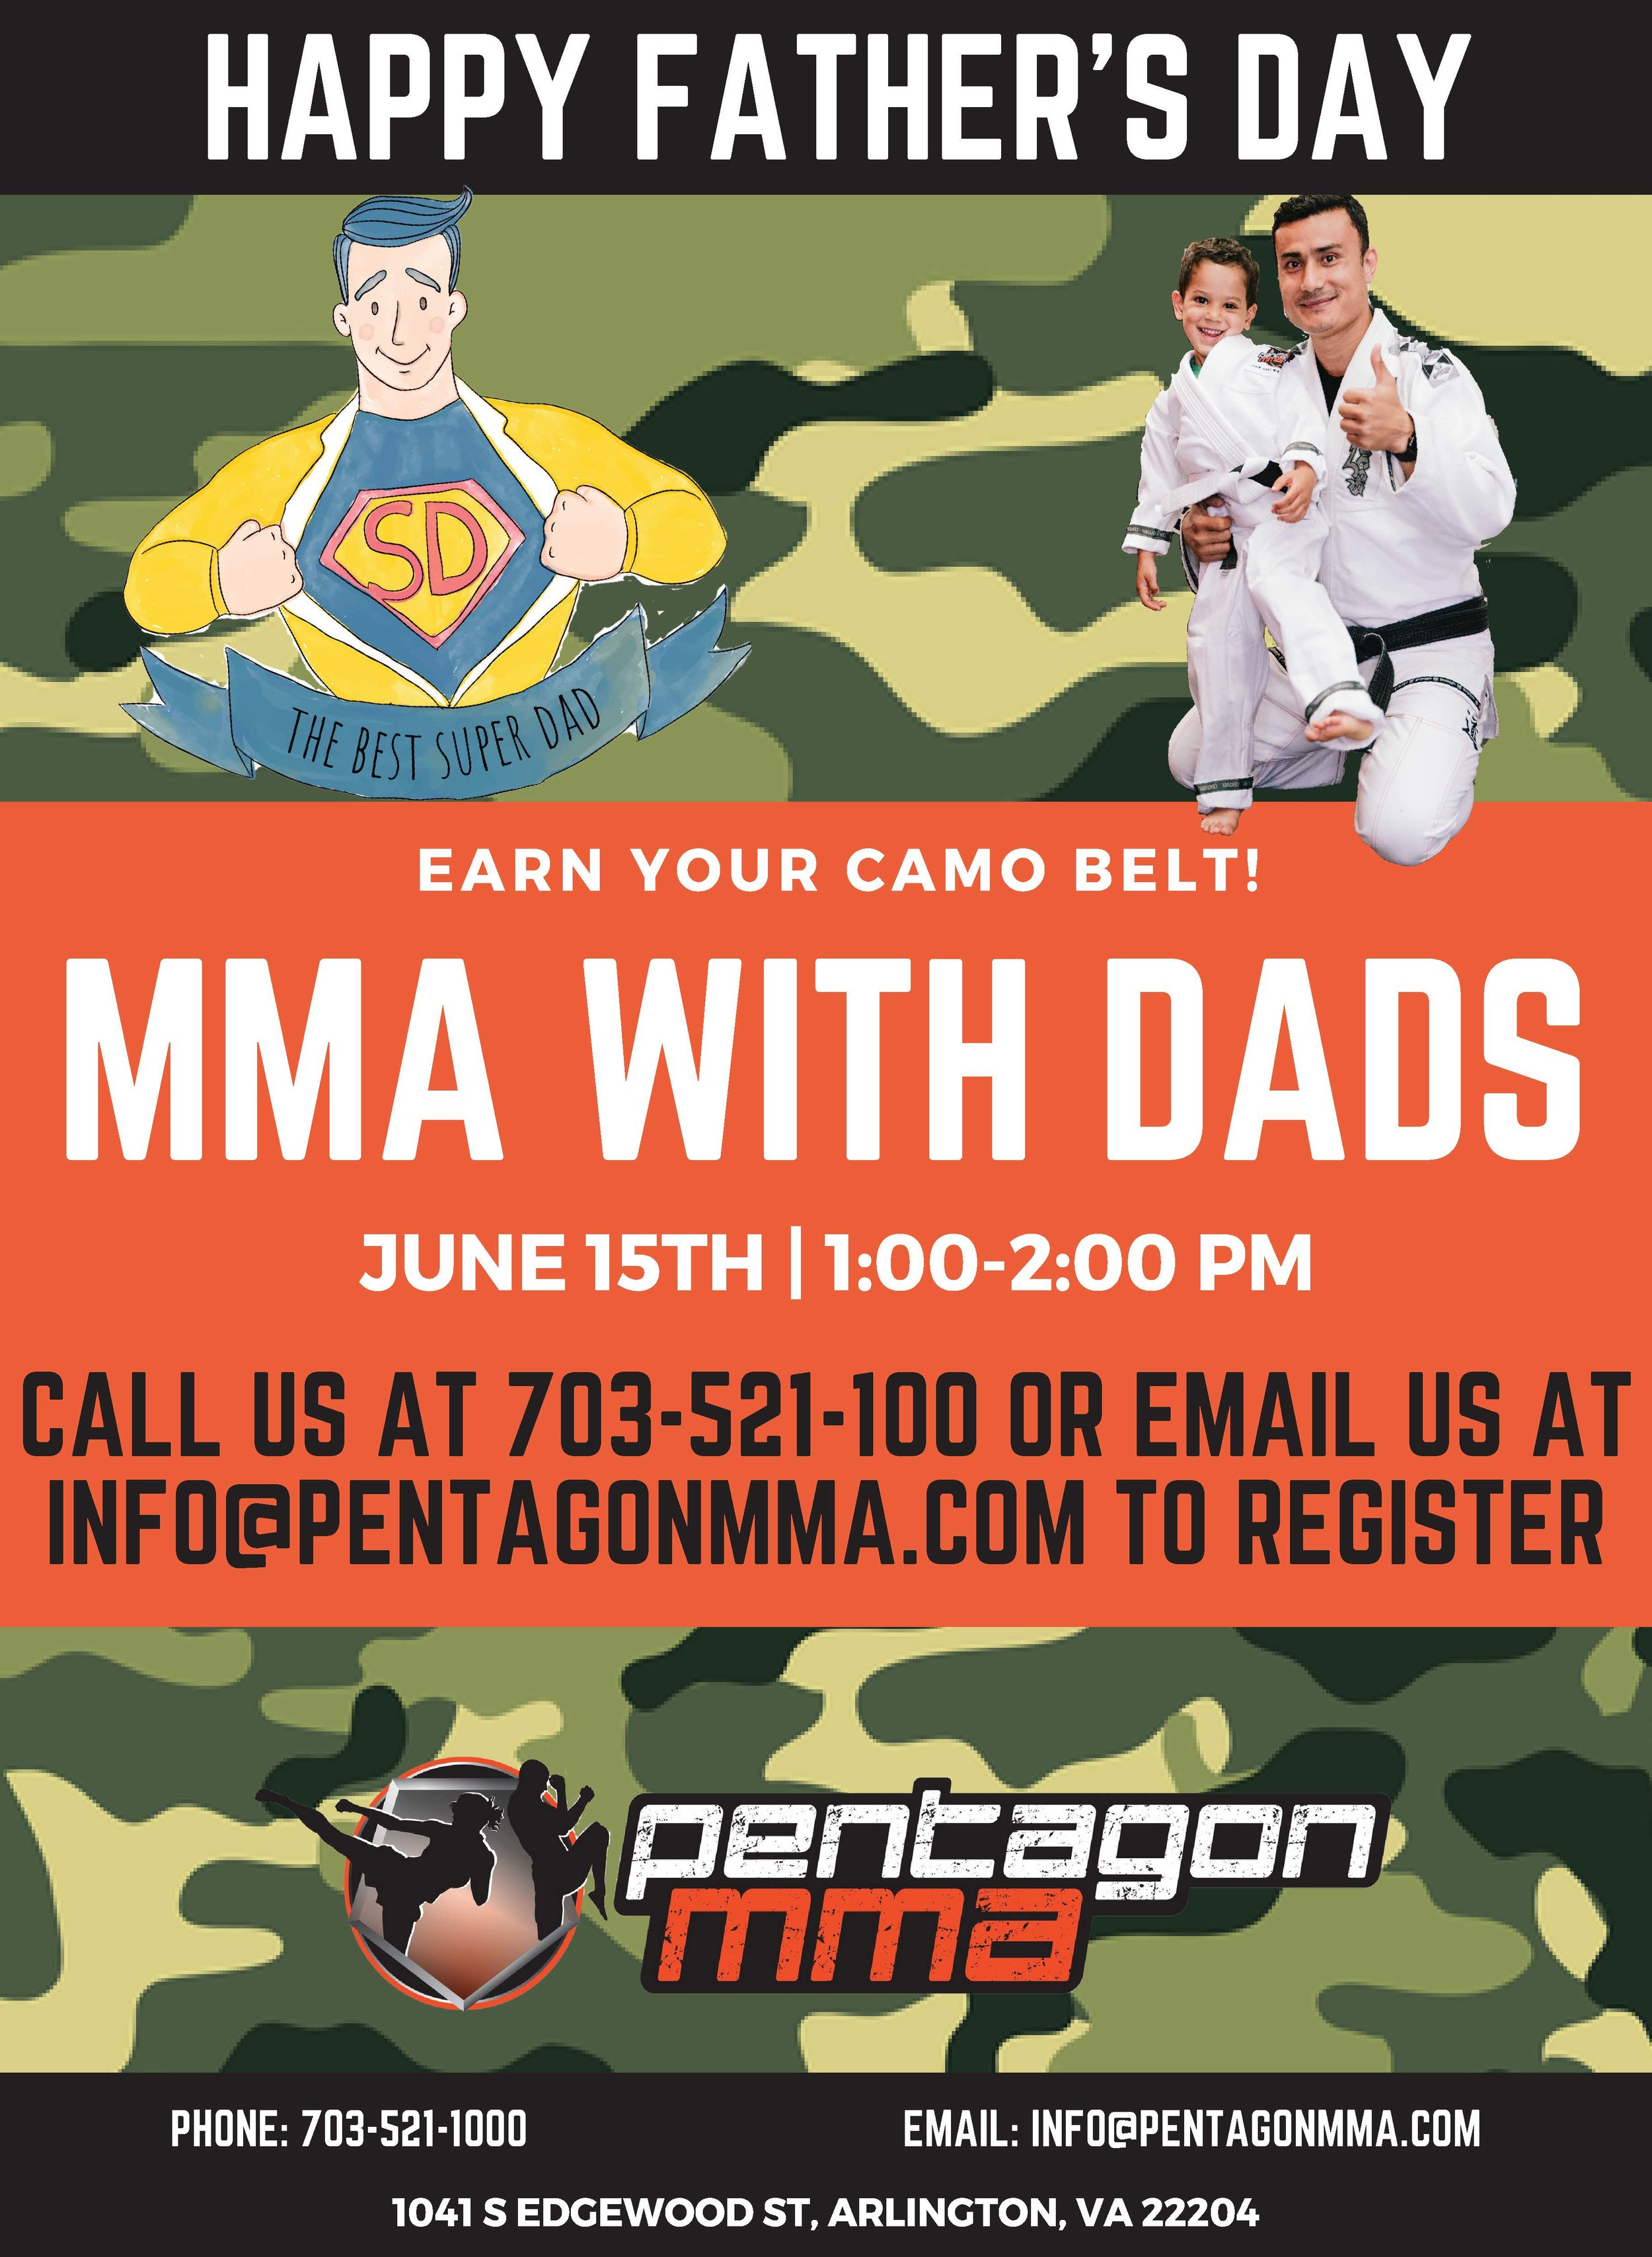 MMA WITH DADS.jpg